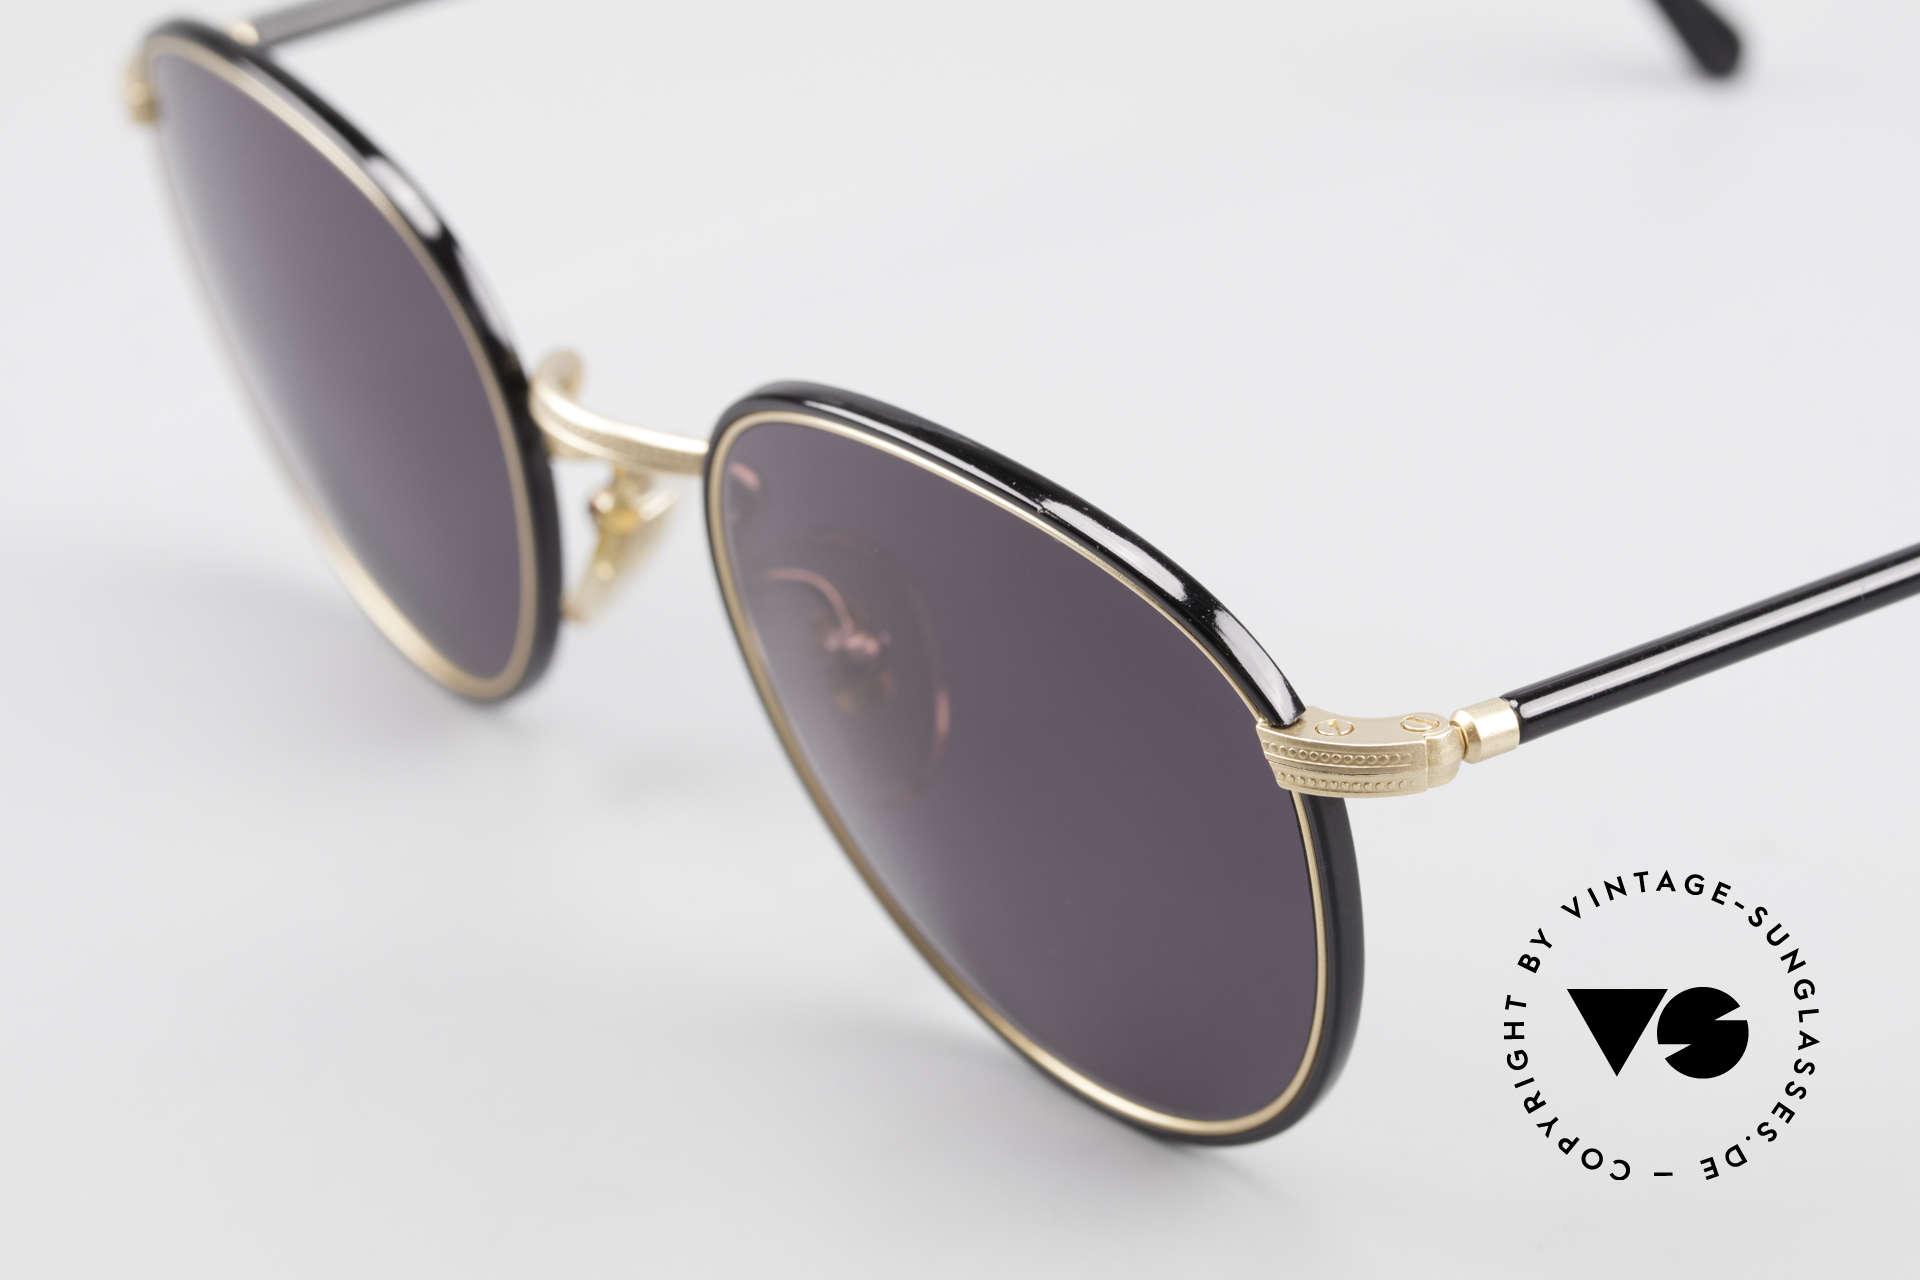 Cutler And Gross 0352 Vintage Panto Sunglasses 90s, very elegant combination of materials and classic colors, Made for Men and Women